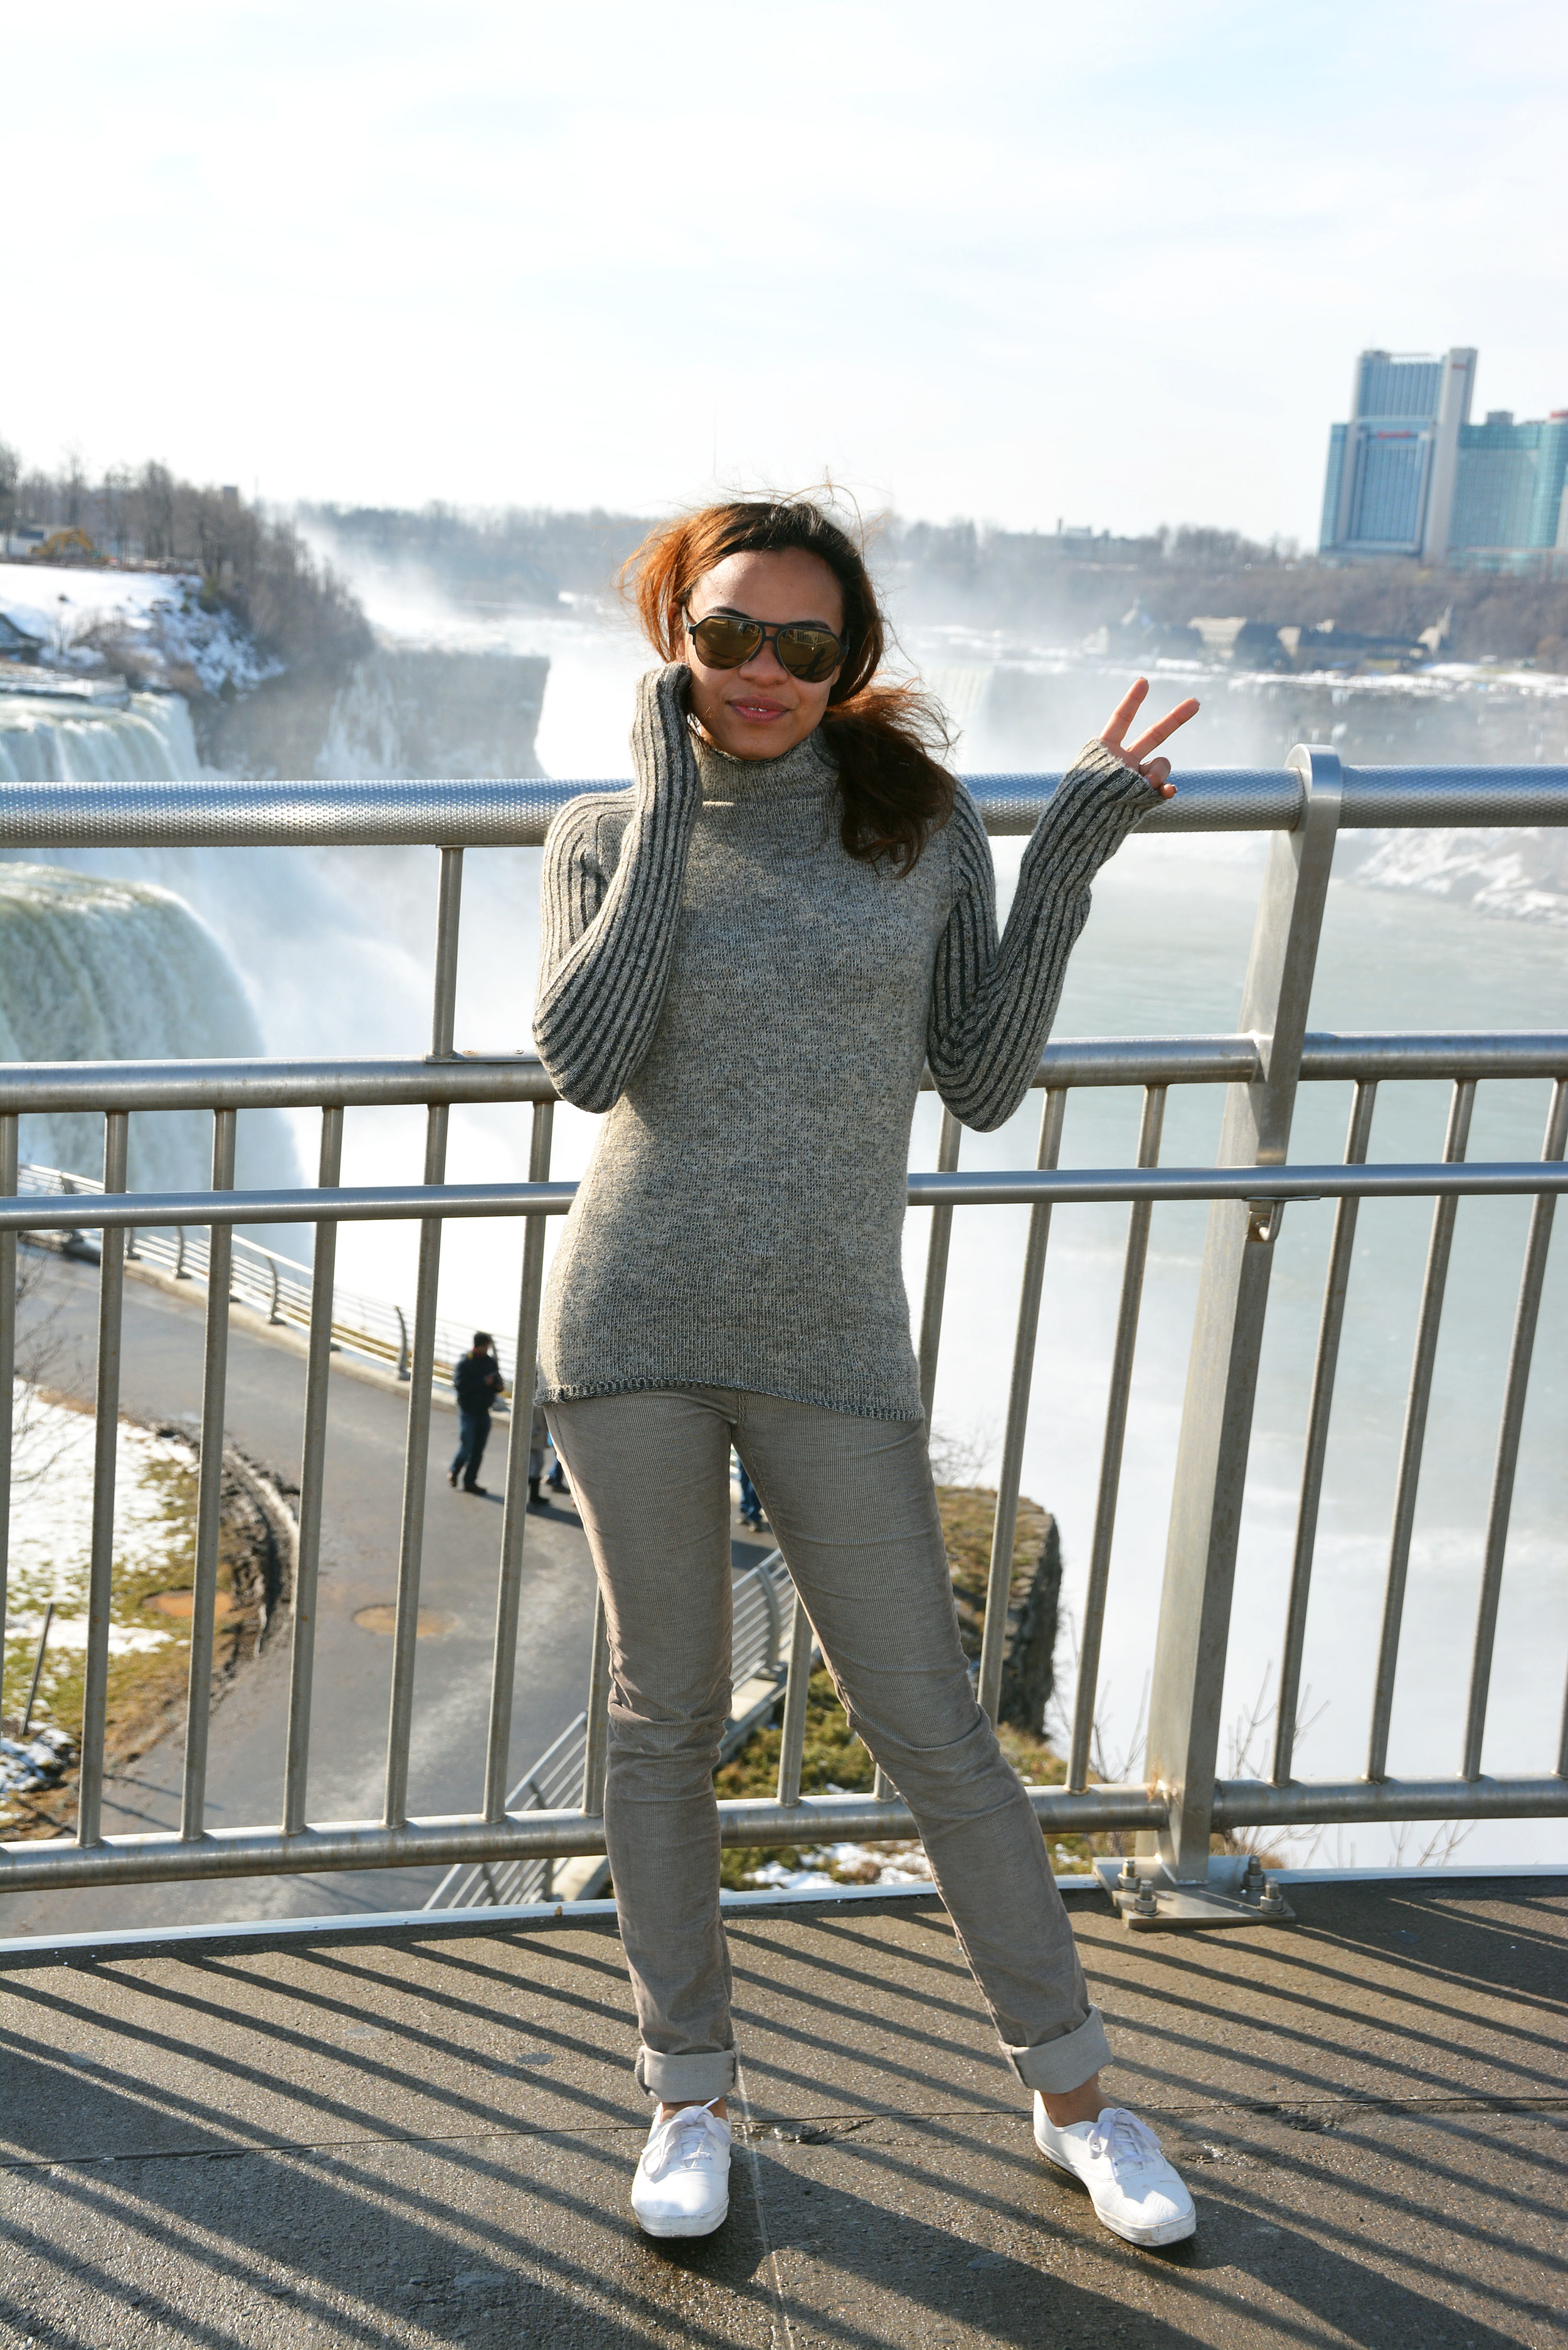 wearing: BDG corduroy pants, Ked's shoes, Zara turtleneck knit, Dolce & Gabbana sunnies.